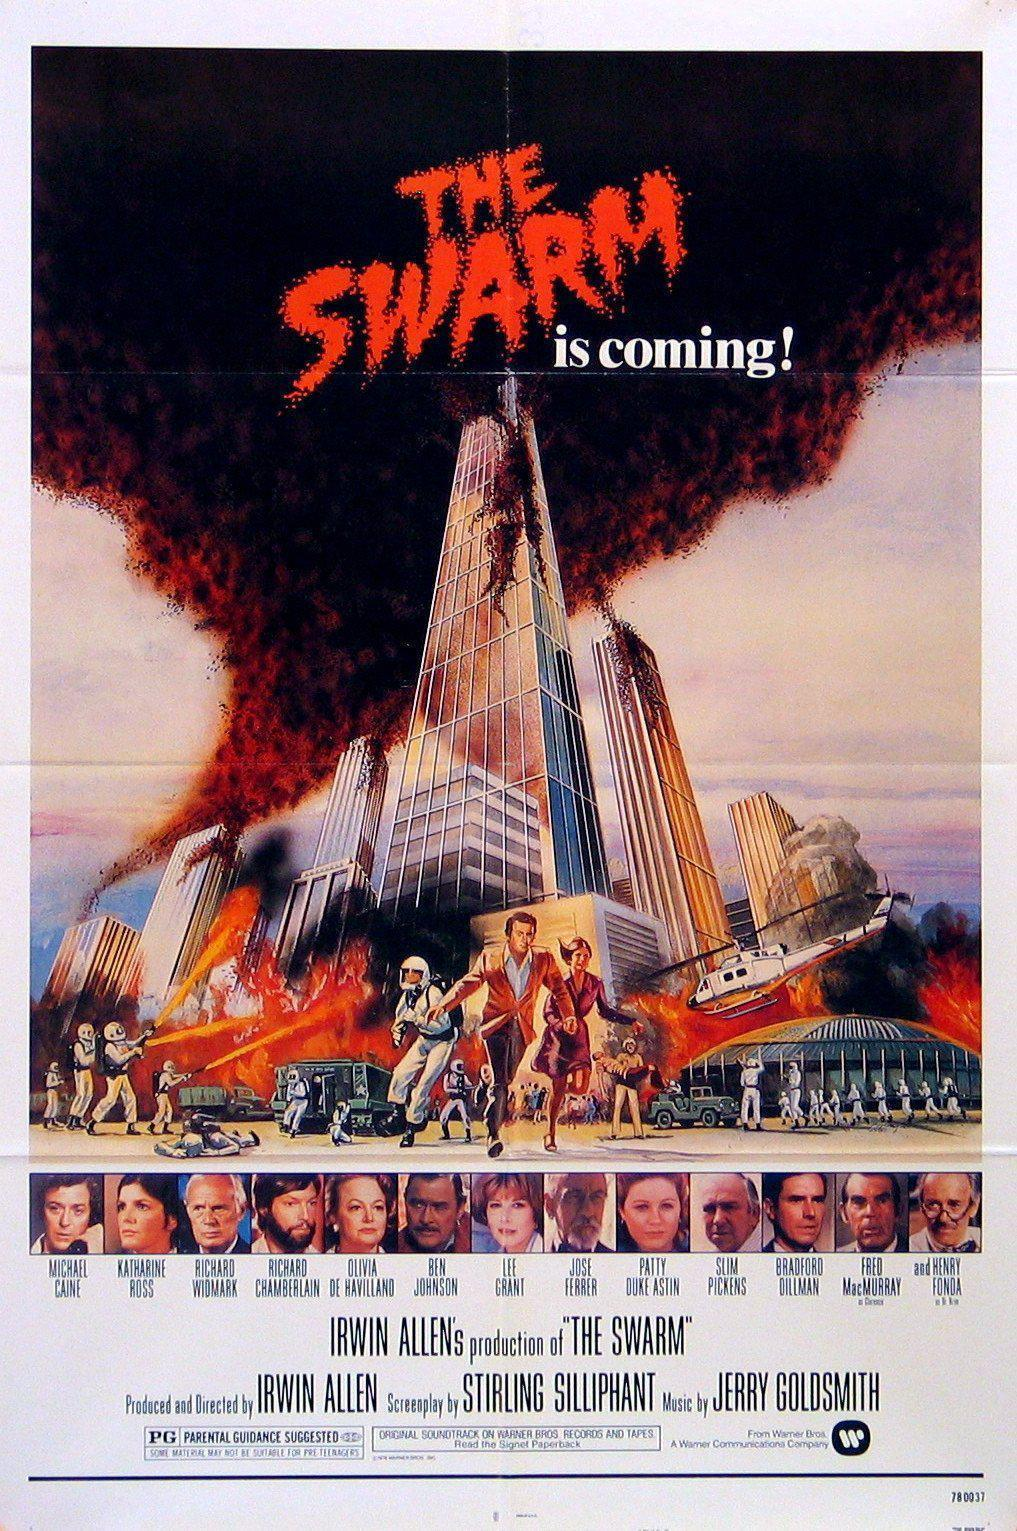 The Swarm 1 Sheet (27x41) Original Vintage Movie Poster